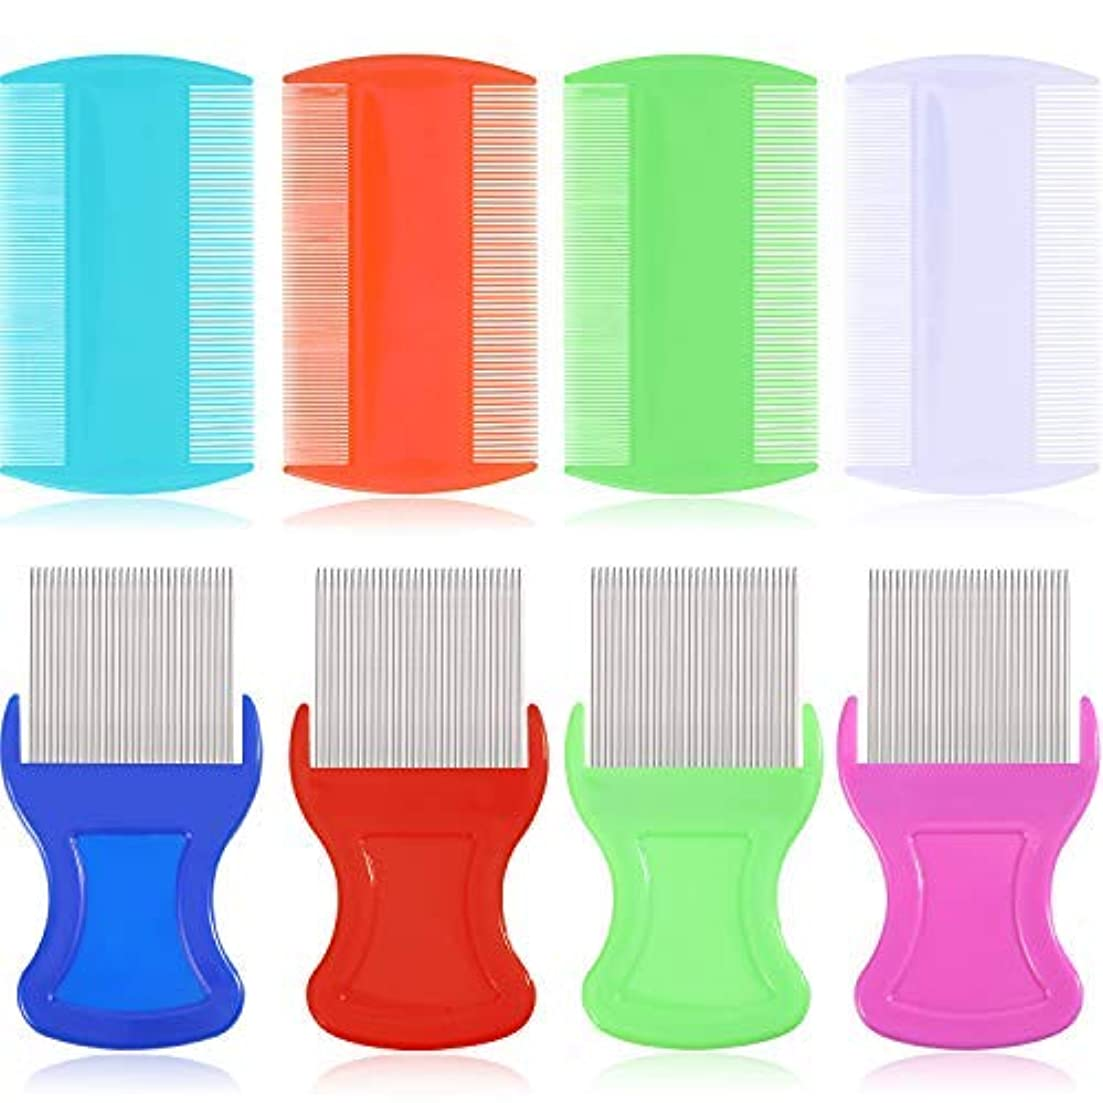 8 Pieces Flea Lice Comb Lice Removal Combs Include 4 Pieces Nit Remover with Metal Teeth and 4 Pieces Double Sided...